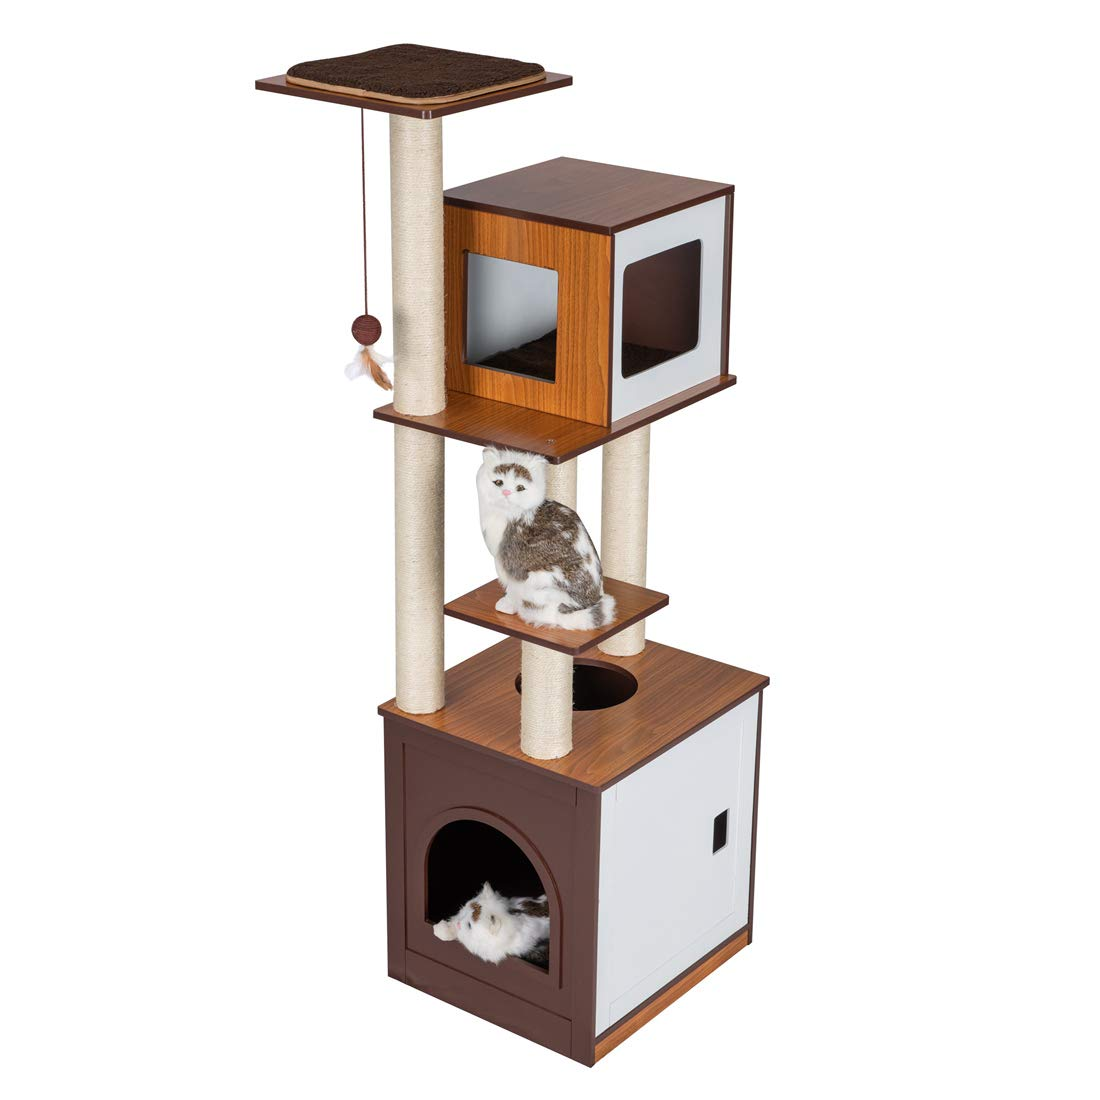 Good Life 60'' Modern Design Wood Deluxe Cat Tree Furniture Kitten House Condo with Washroom for Small to Lager Cats Climbing Tower w/Scratching Post PET594 by GOOD LIFE USA